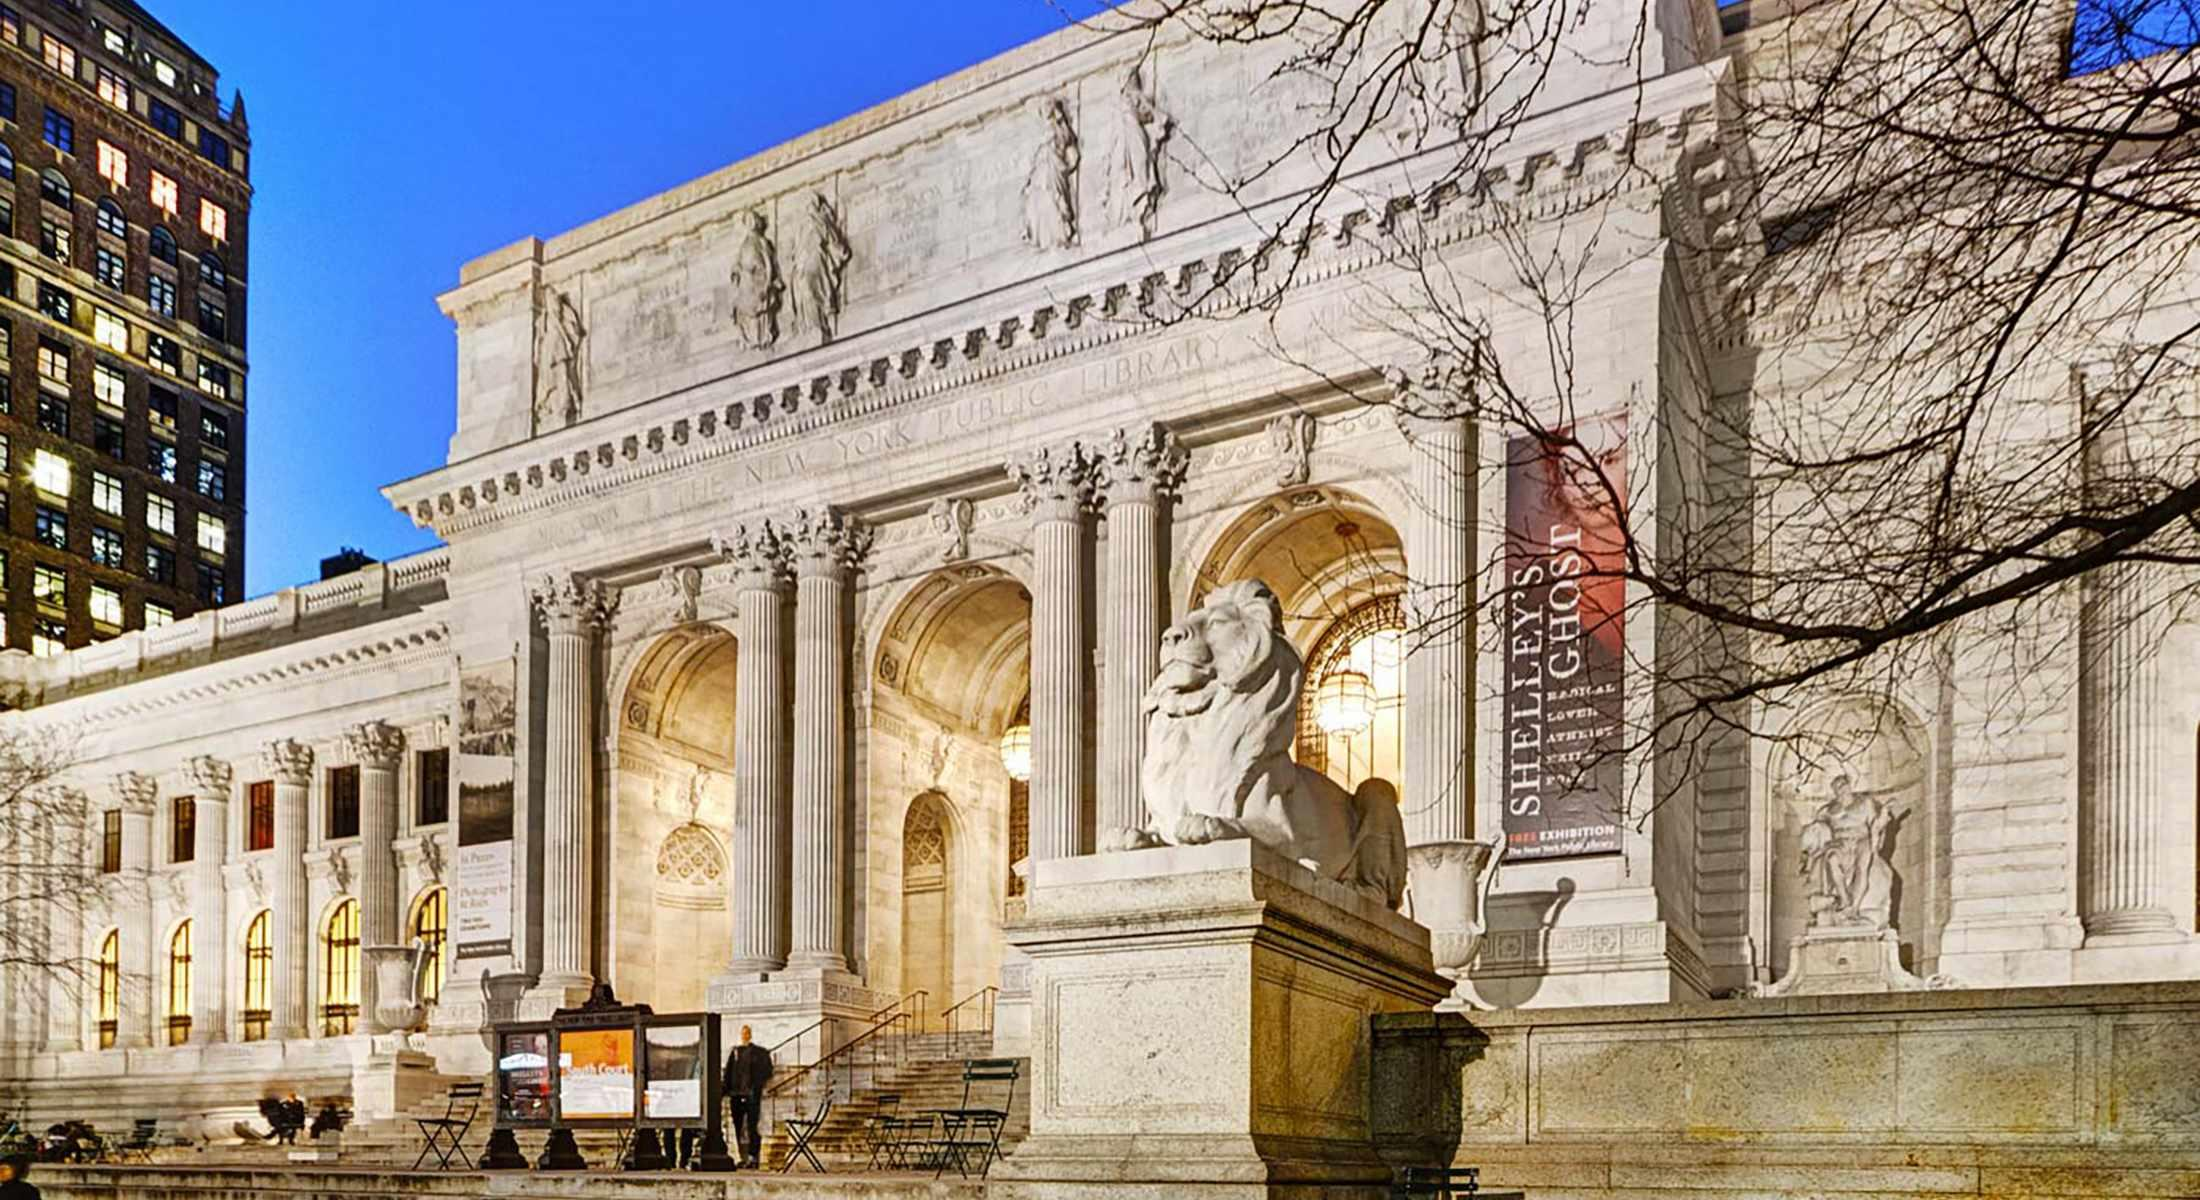 Library hotel new york city official site boutique hotel manhattan the beautiful and iconic new york public library is just one block away from the library fandeluxe Gallery